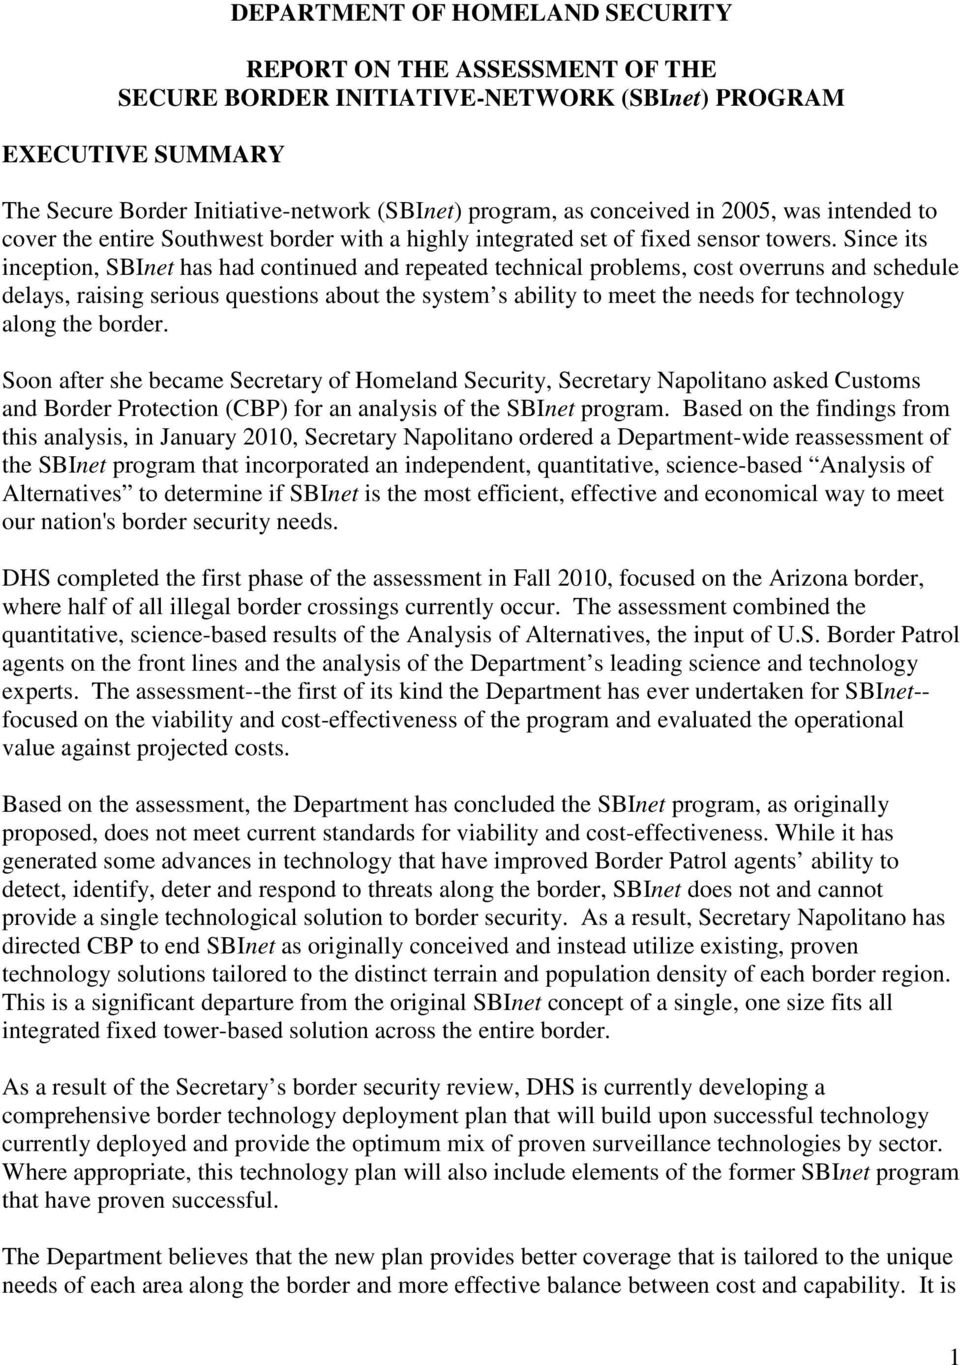 Cbp Marine Interdiction Agent Cover Letter Department Of Homeland Security Report On The Assessment Of The